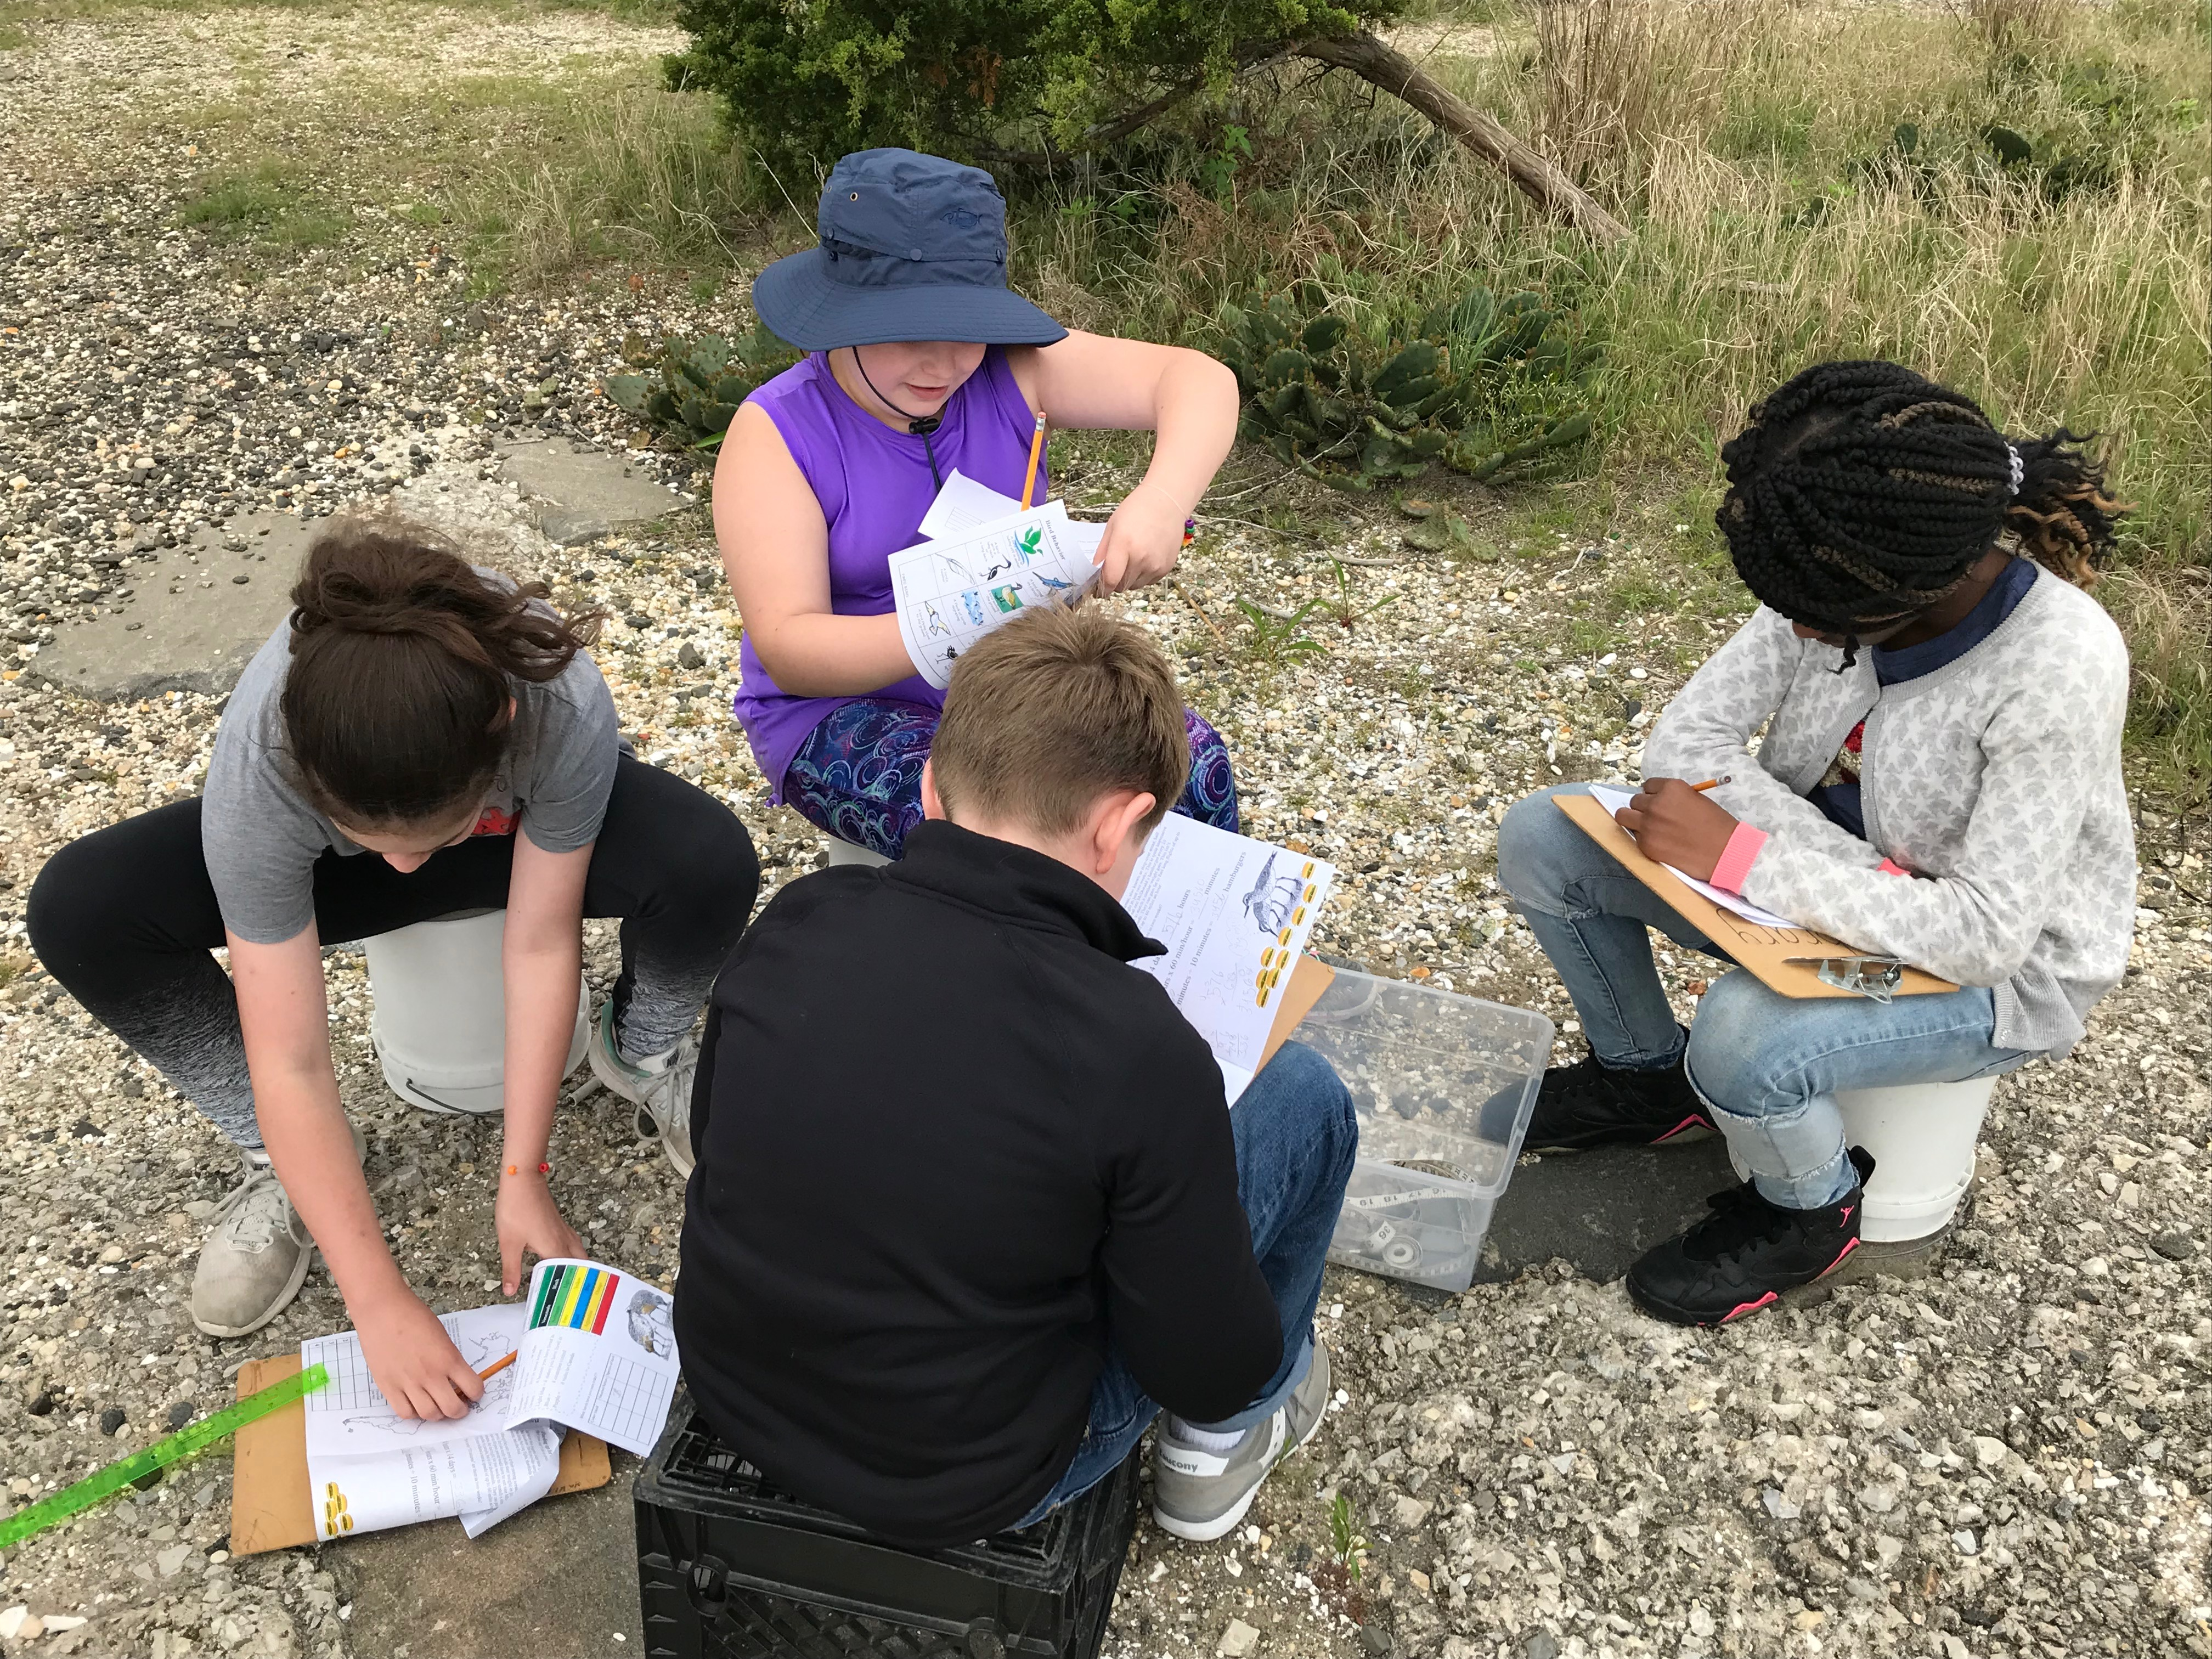 students take scientific measurements outdoors